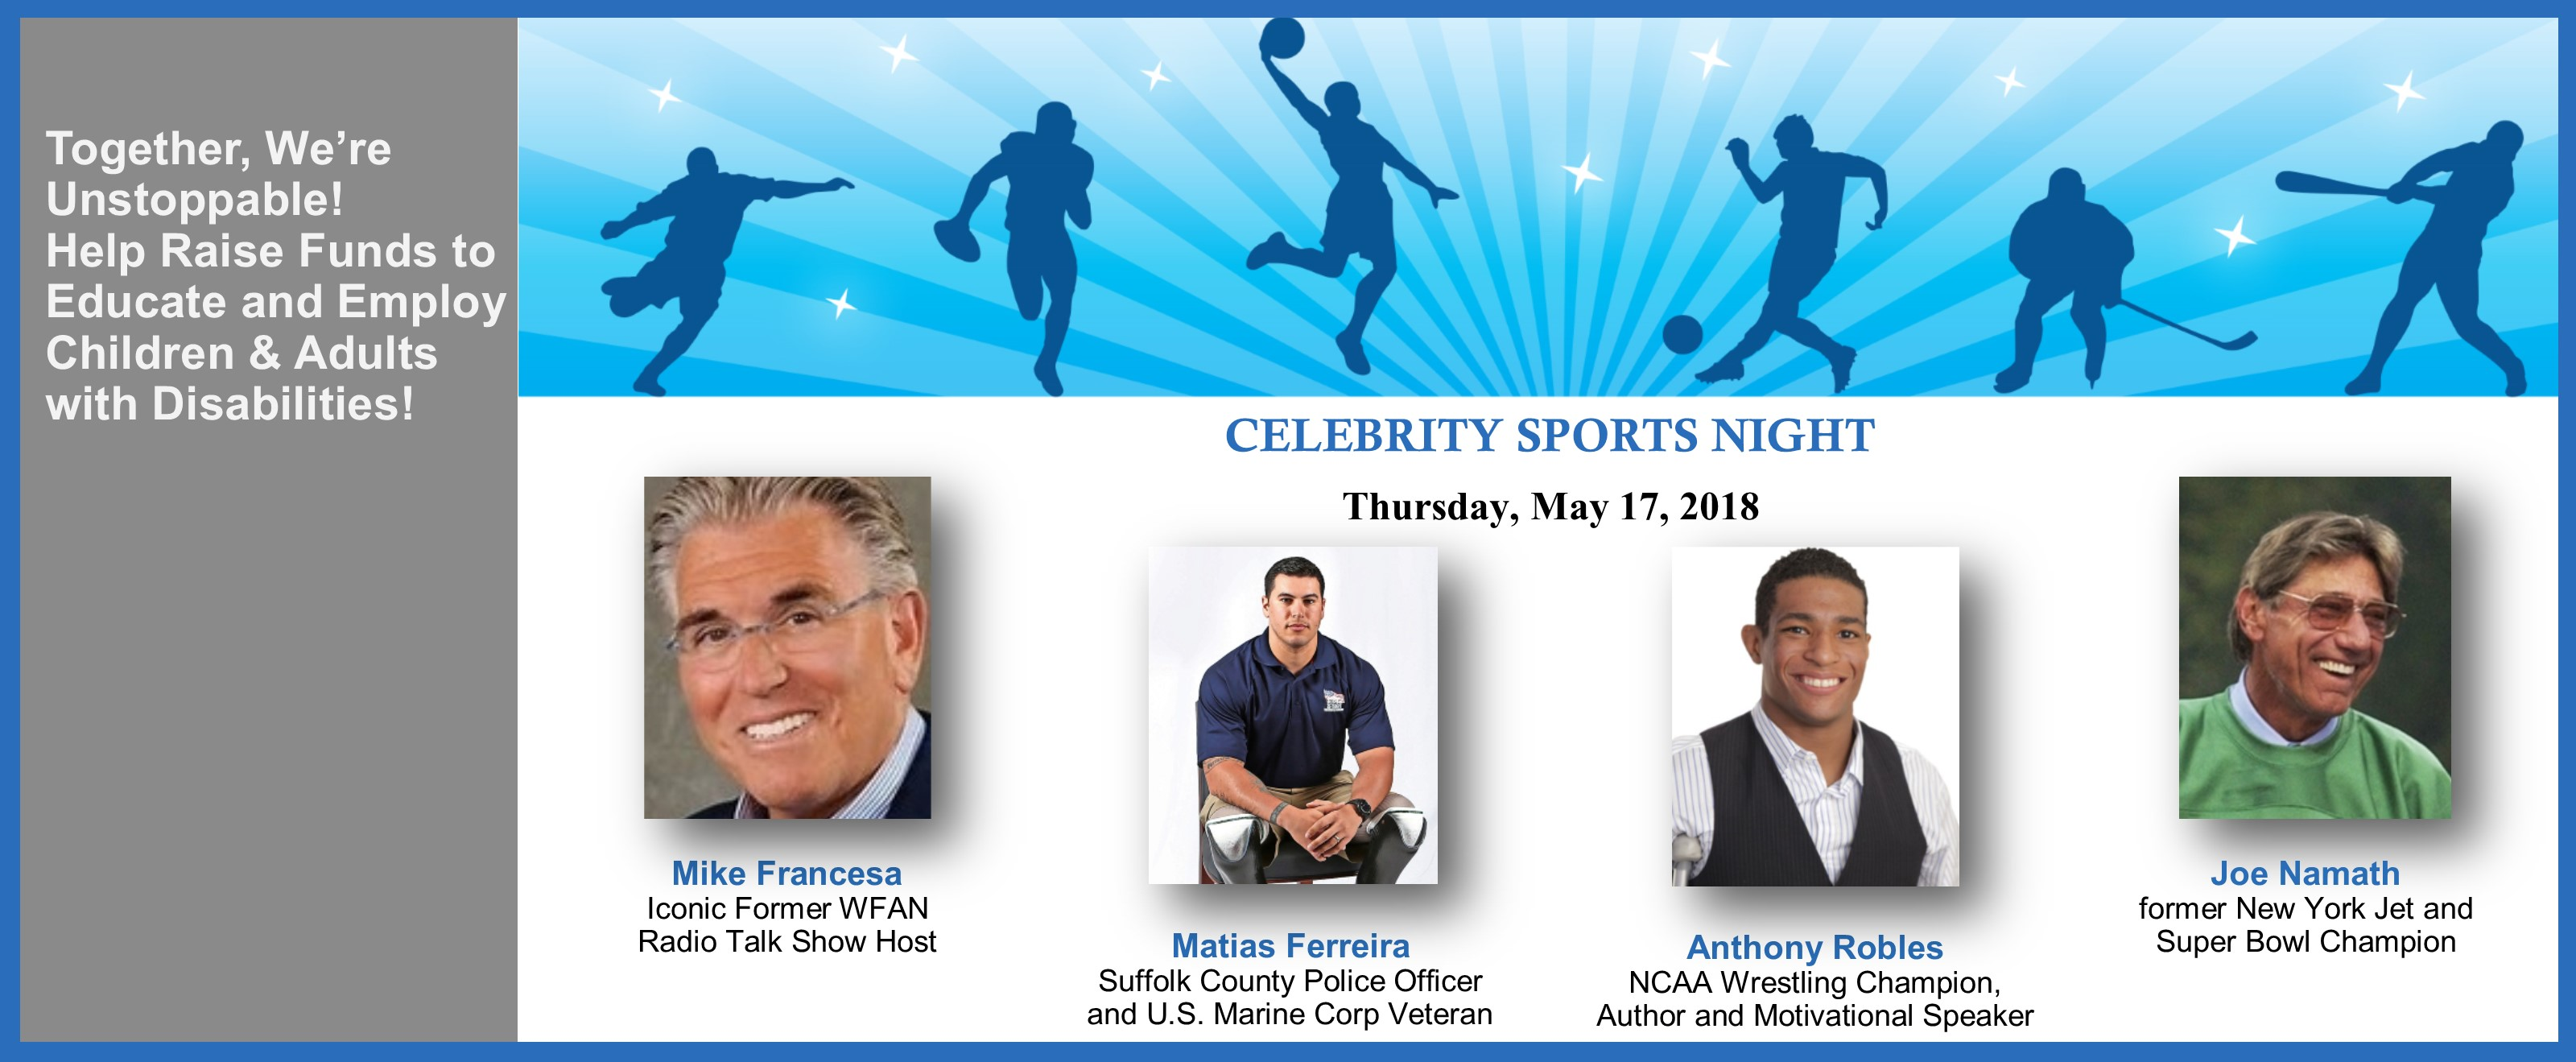 Celebrity Sports Night, May 17, 2018. Together, We're Unstoppable! Help Raise Funds to Educate and Employ Children & Adults with Disabilities! This year's special guests include: Mike Francesa, Iconic Former WFAN Radio Talk Show Host, Matias Ferreira, Suffolk PD and US Marine Corp Vet, Anthony Robles, NCAA Wrestling Champ and Joe Namath, Former NY Jet and Super Bowl Champ.